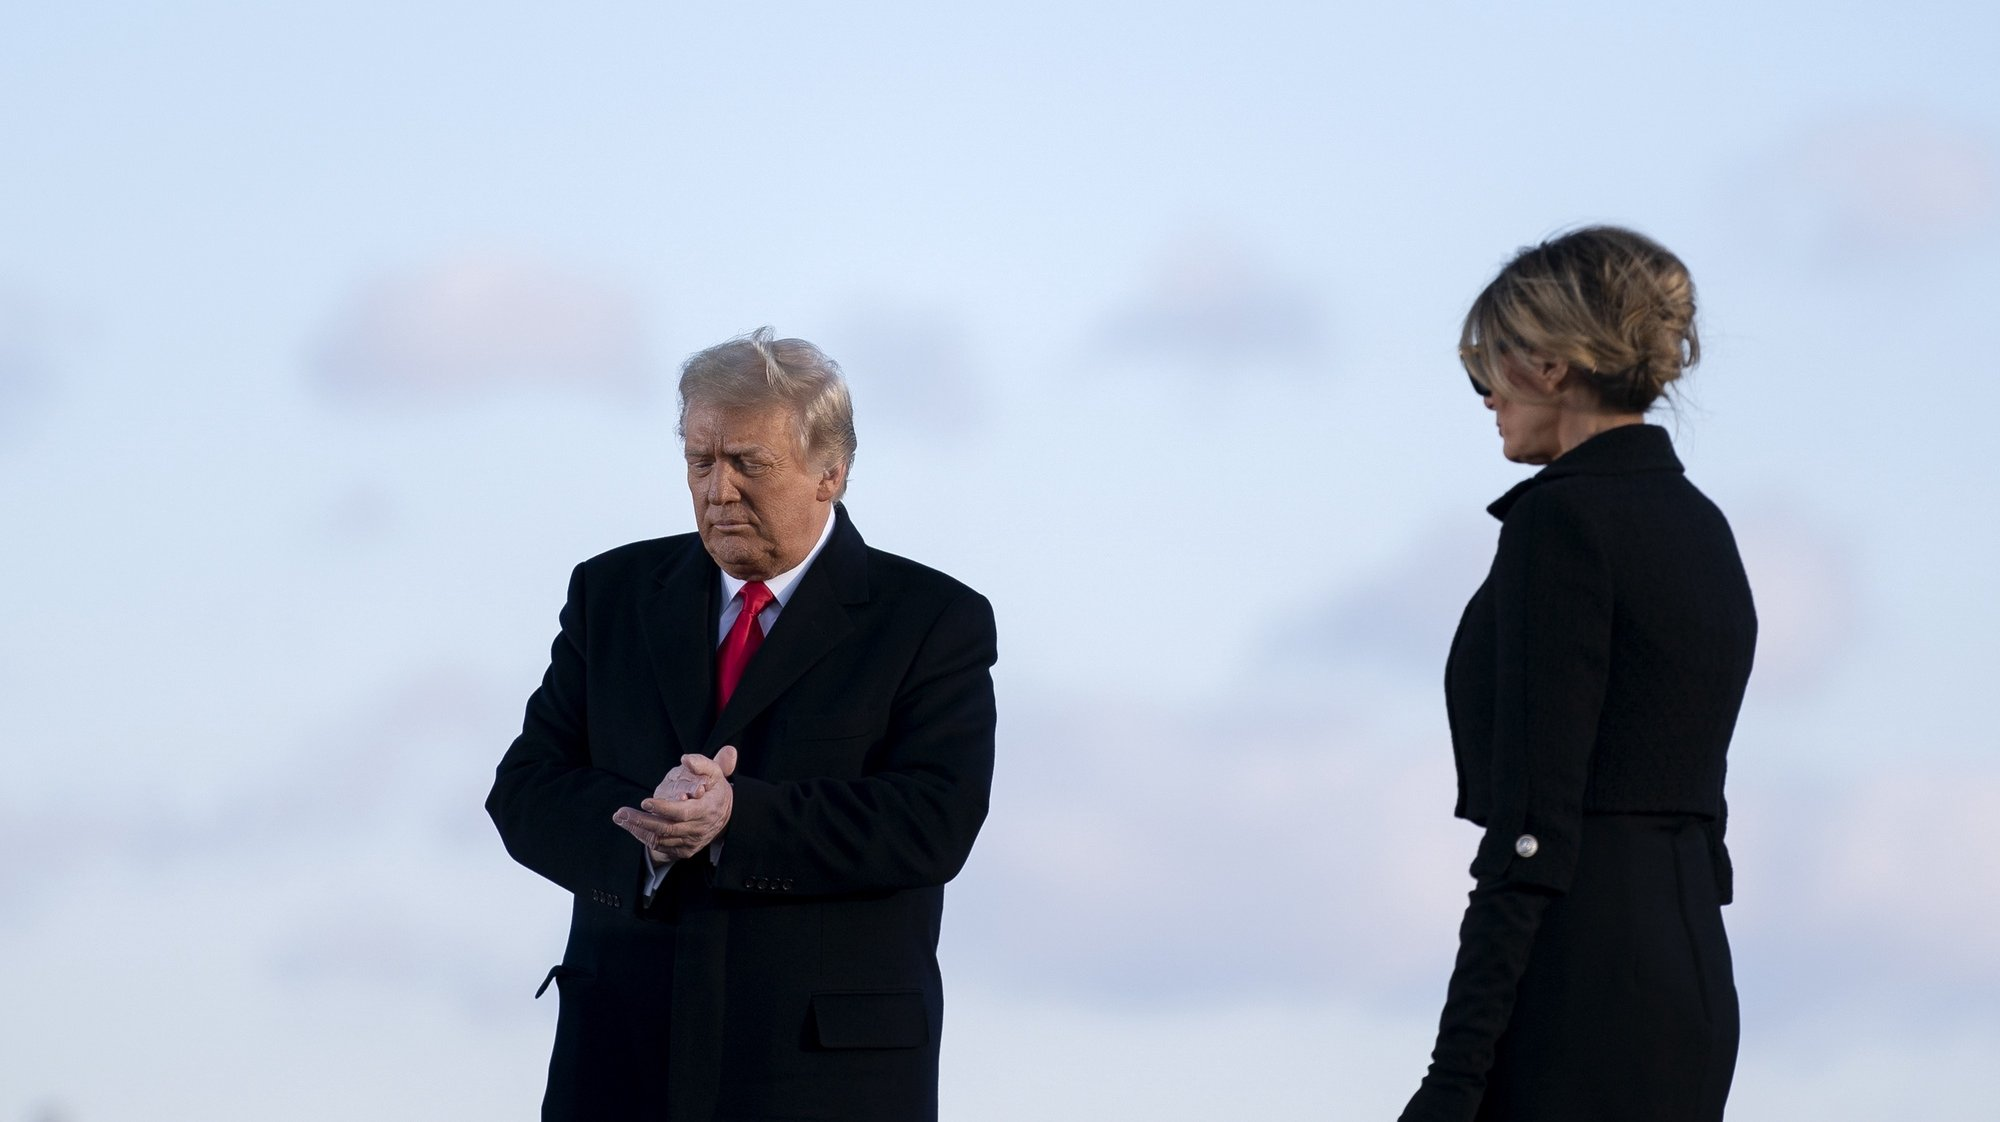 epa08953514 U.S. President Donald Trump, left, and U.S. First Lady Melania Trump prepare to depart a farewell ceremony at Joint Base Andrews, Maryland, USA, 20 January 2021. US President Donald J. Trump is not attending the Inaugration ceremony of President-elect Joe Biden. Biden won the 03 November 2020 election to become the 46th President of the United States of America.  EPA/Stefani Reynolds / POOL